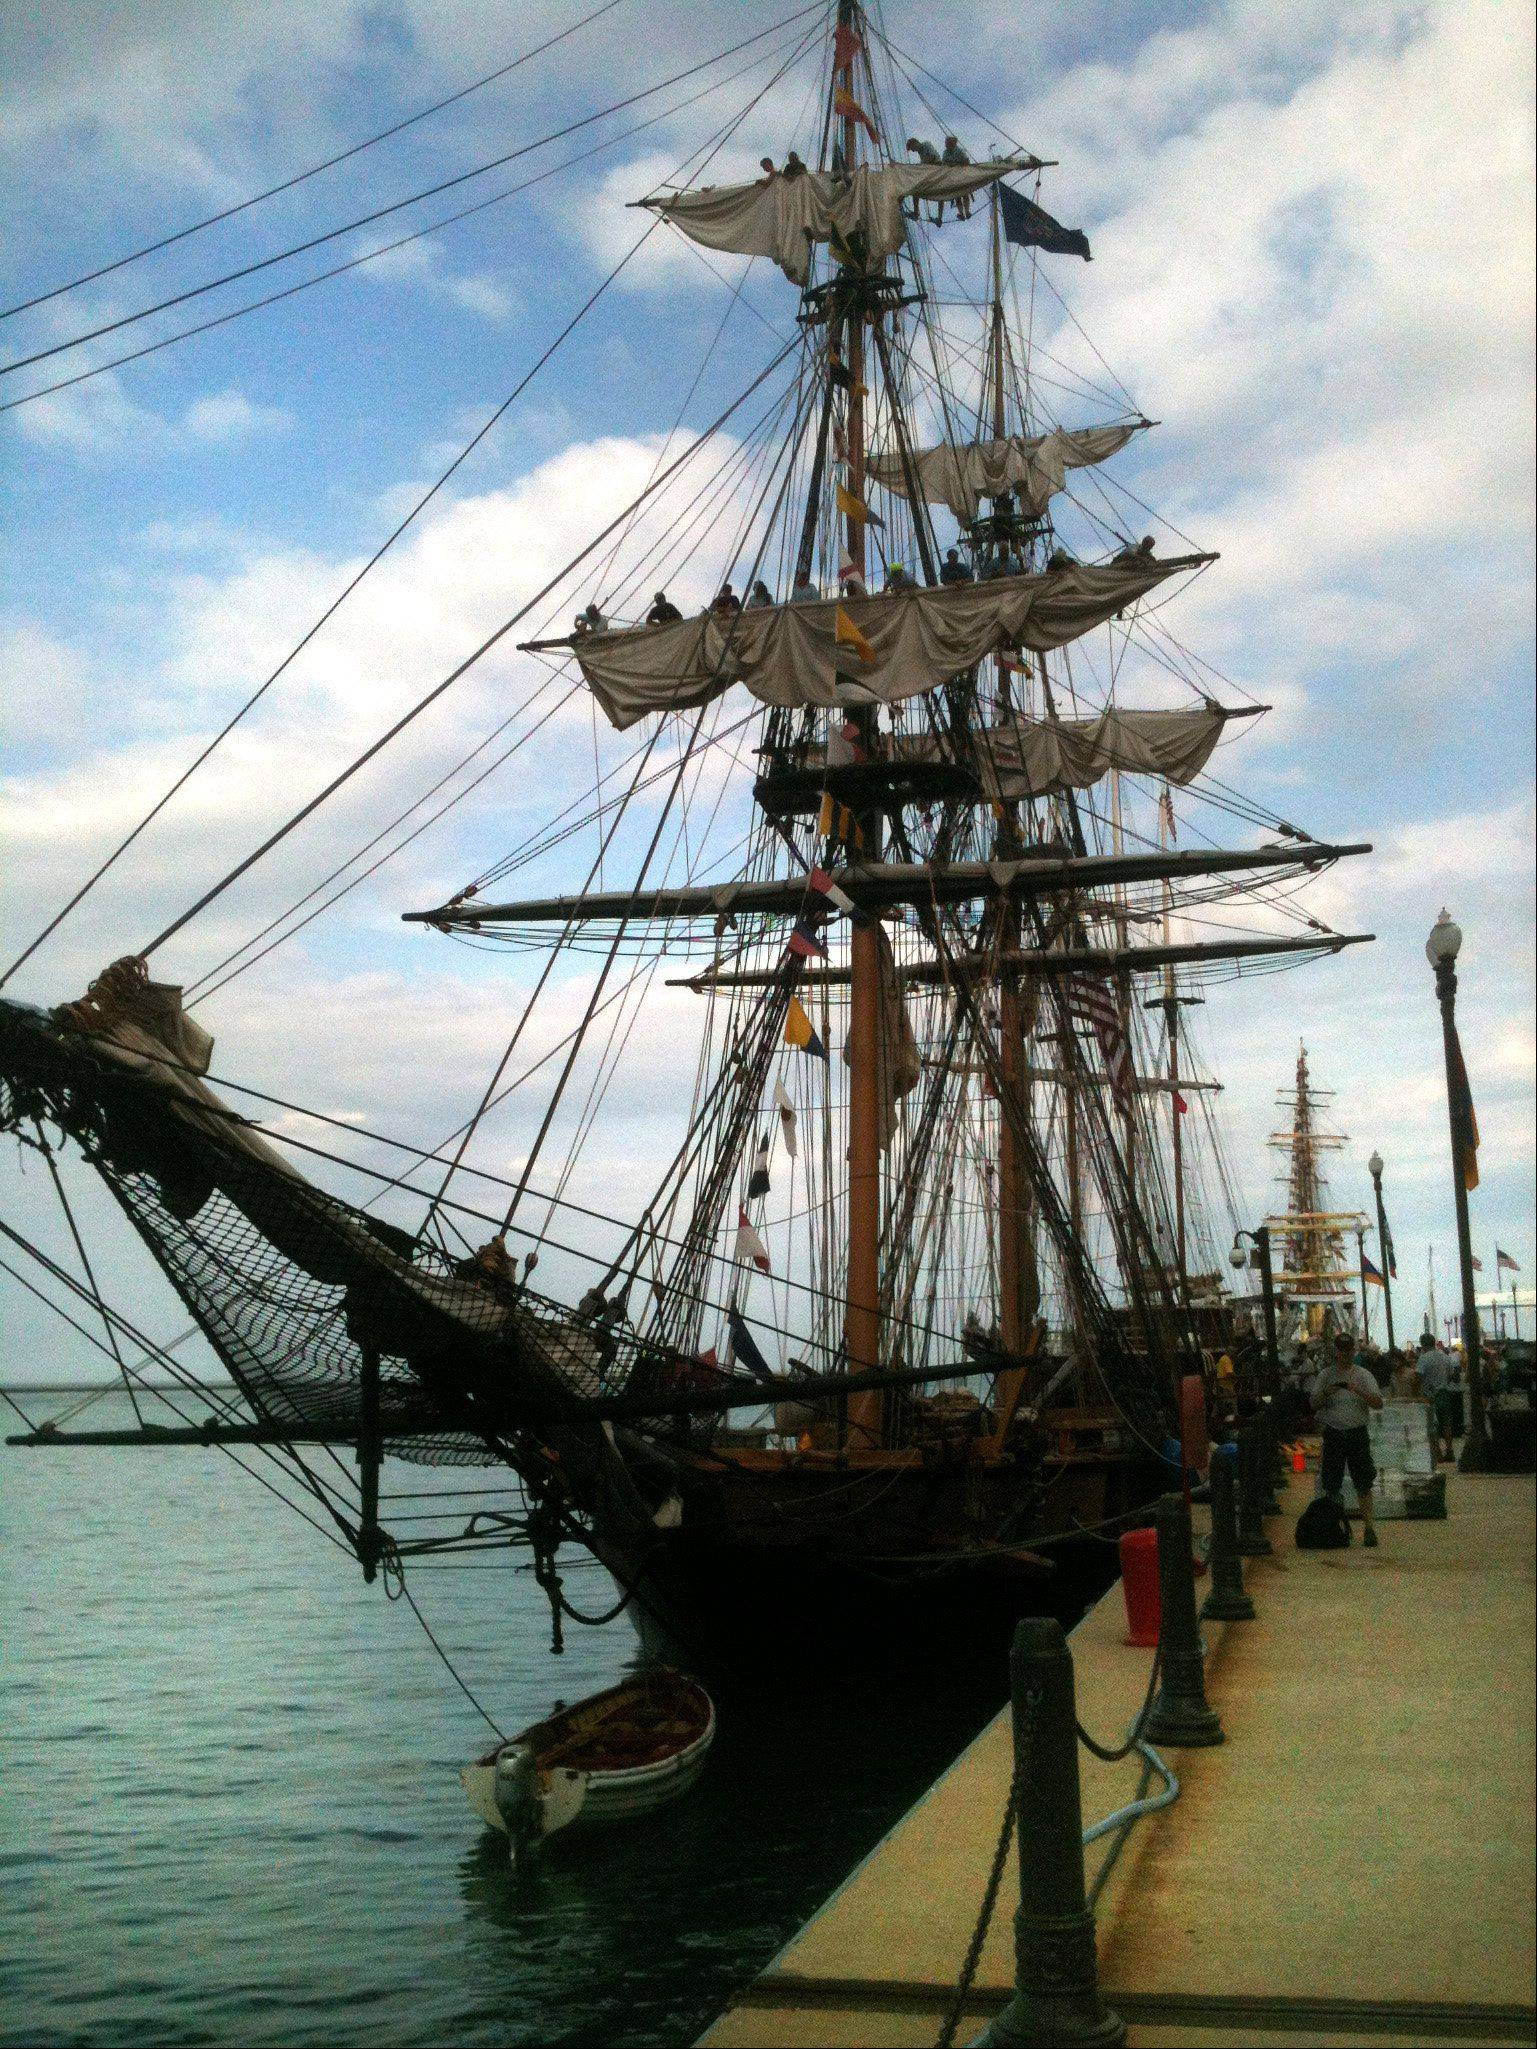 The Flagship Niagara, from Erie, Pa, is docked off Navy Pier in Chicago as the Tall Ships Chicago festival began yesterday. The festival, featuring the ships as well as the Chicago Match Cup sailing race, plus entertainment and activities for kids, runs through Sunday.